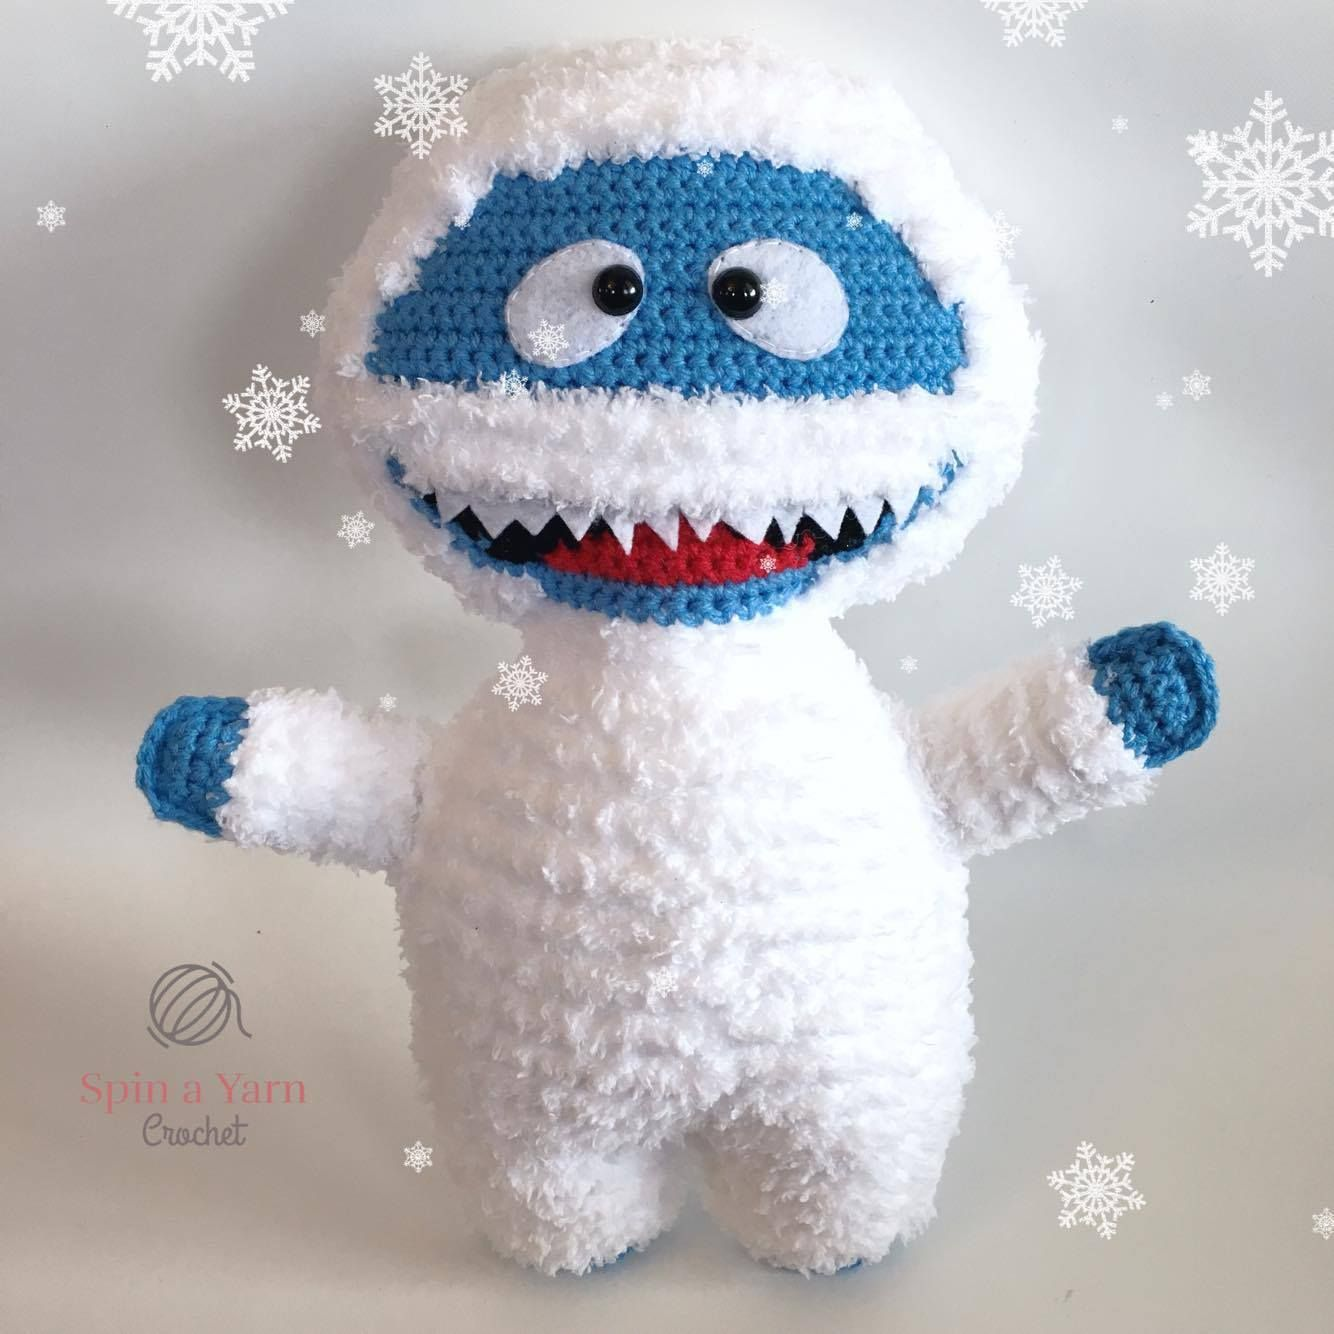 Bumble the Abominable Snowman - Free Crochet Pattern at Spin a Yarn ...